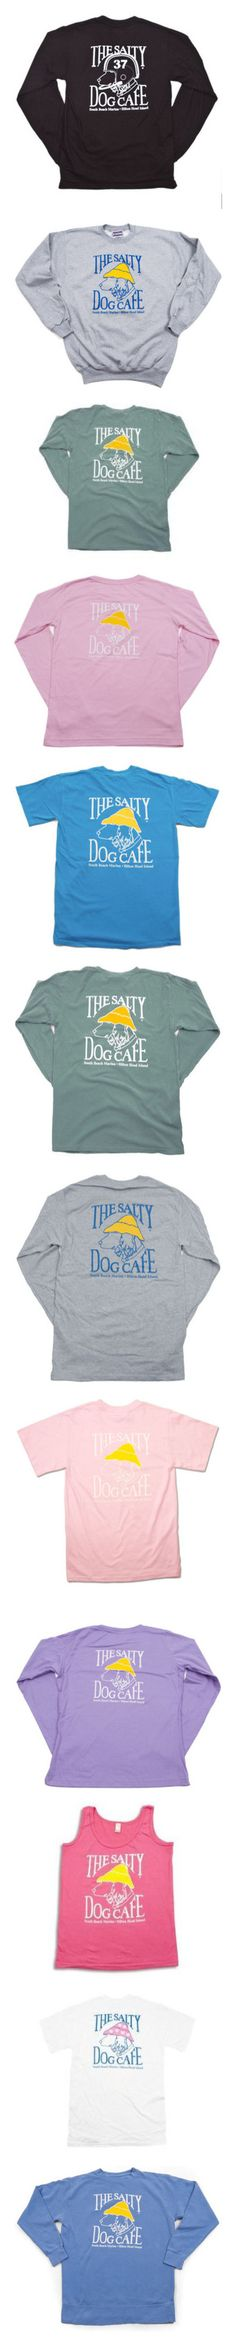 """""""The Salty Dog Cafe Apparel"""" by sperry-topsider ❤ liked on Polyvore featuring long sleeve shirts, sweaters, sweatshirts, shirts, tops, t-shirts, tops/outerwear, tees, basic tees and tank tops"""